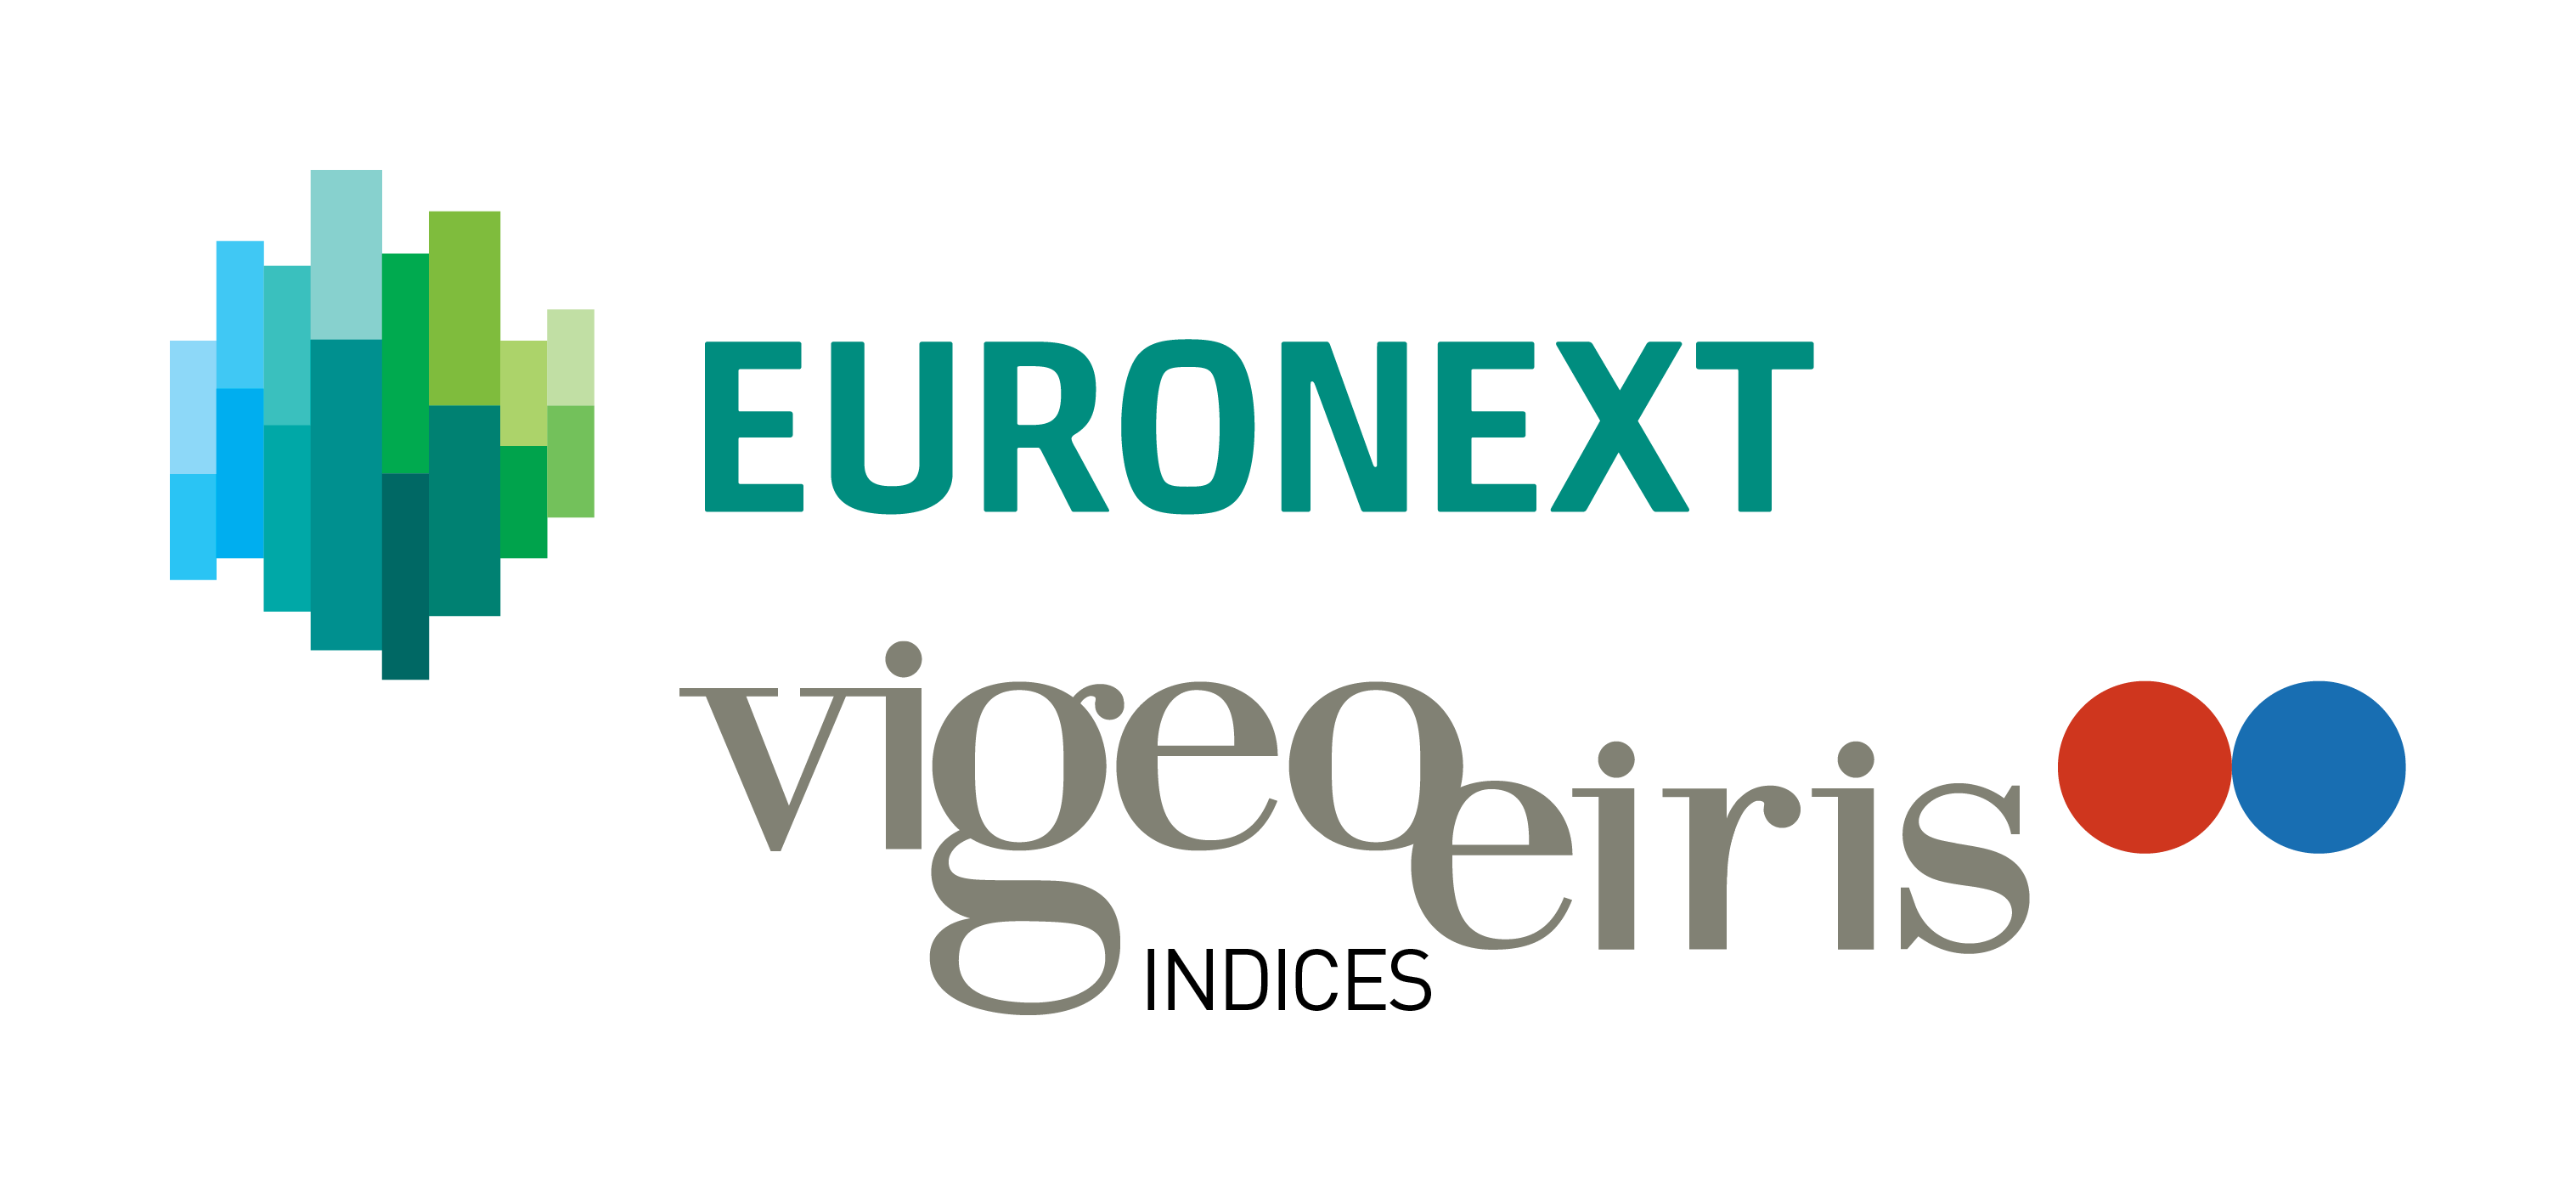 euronext-vigeo-eiris_port_colour_indices_only